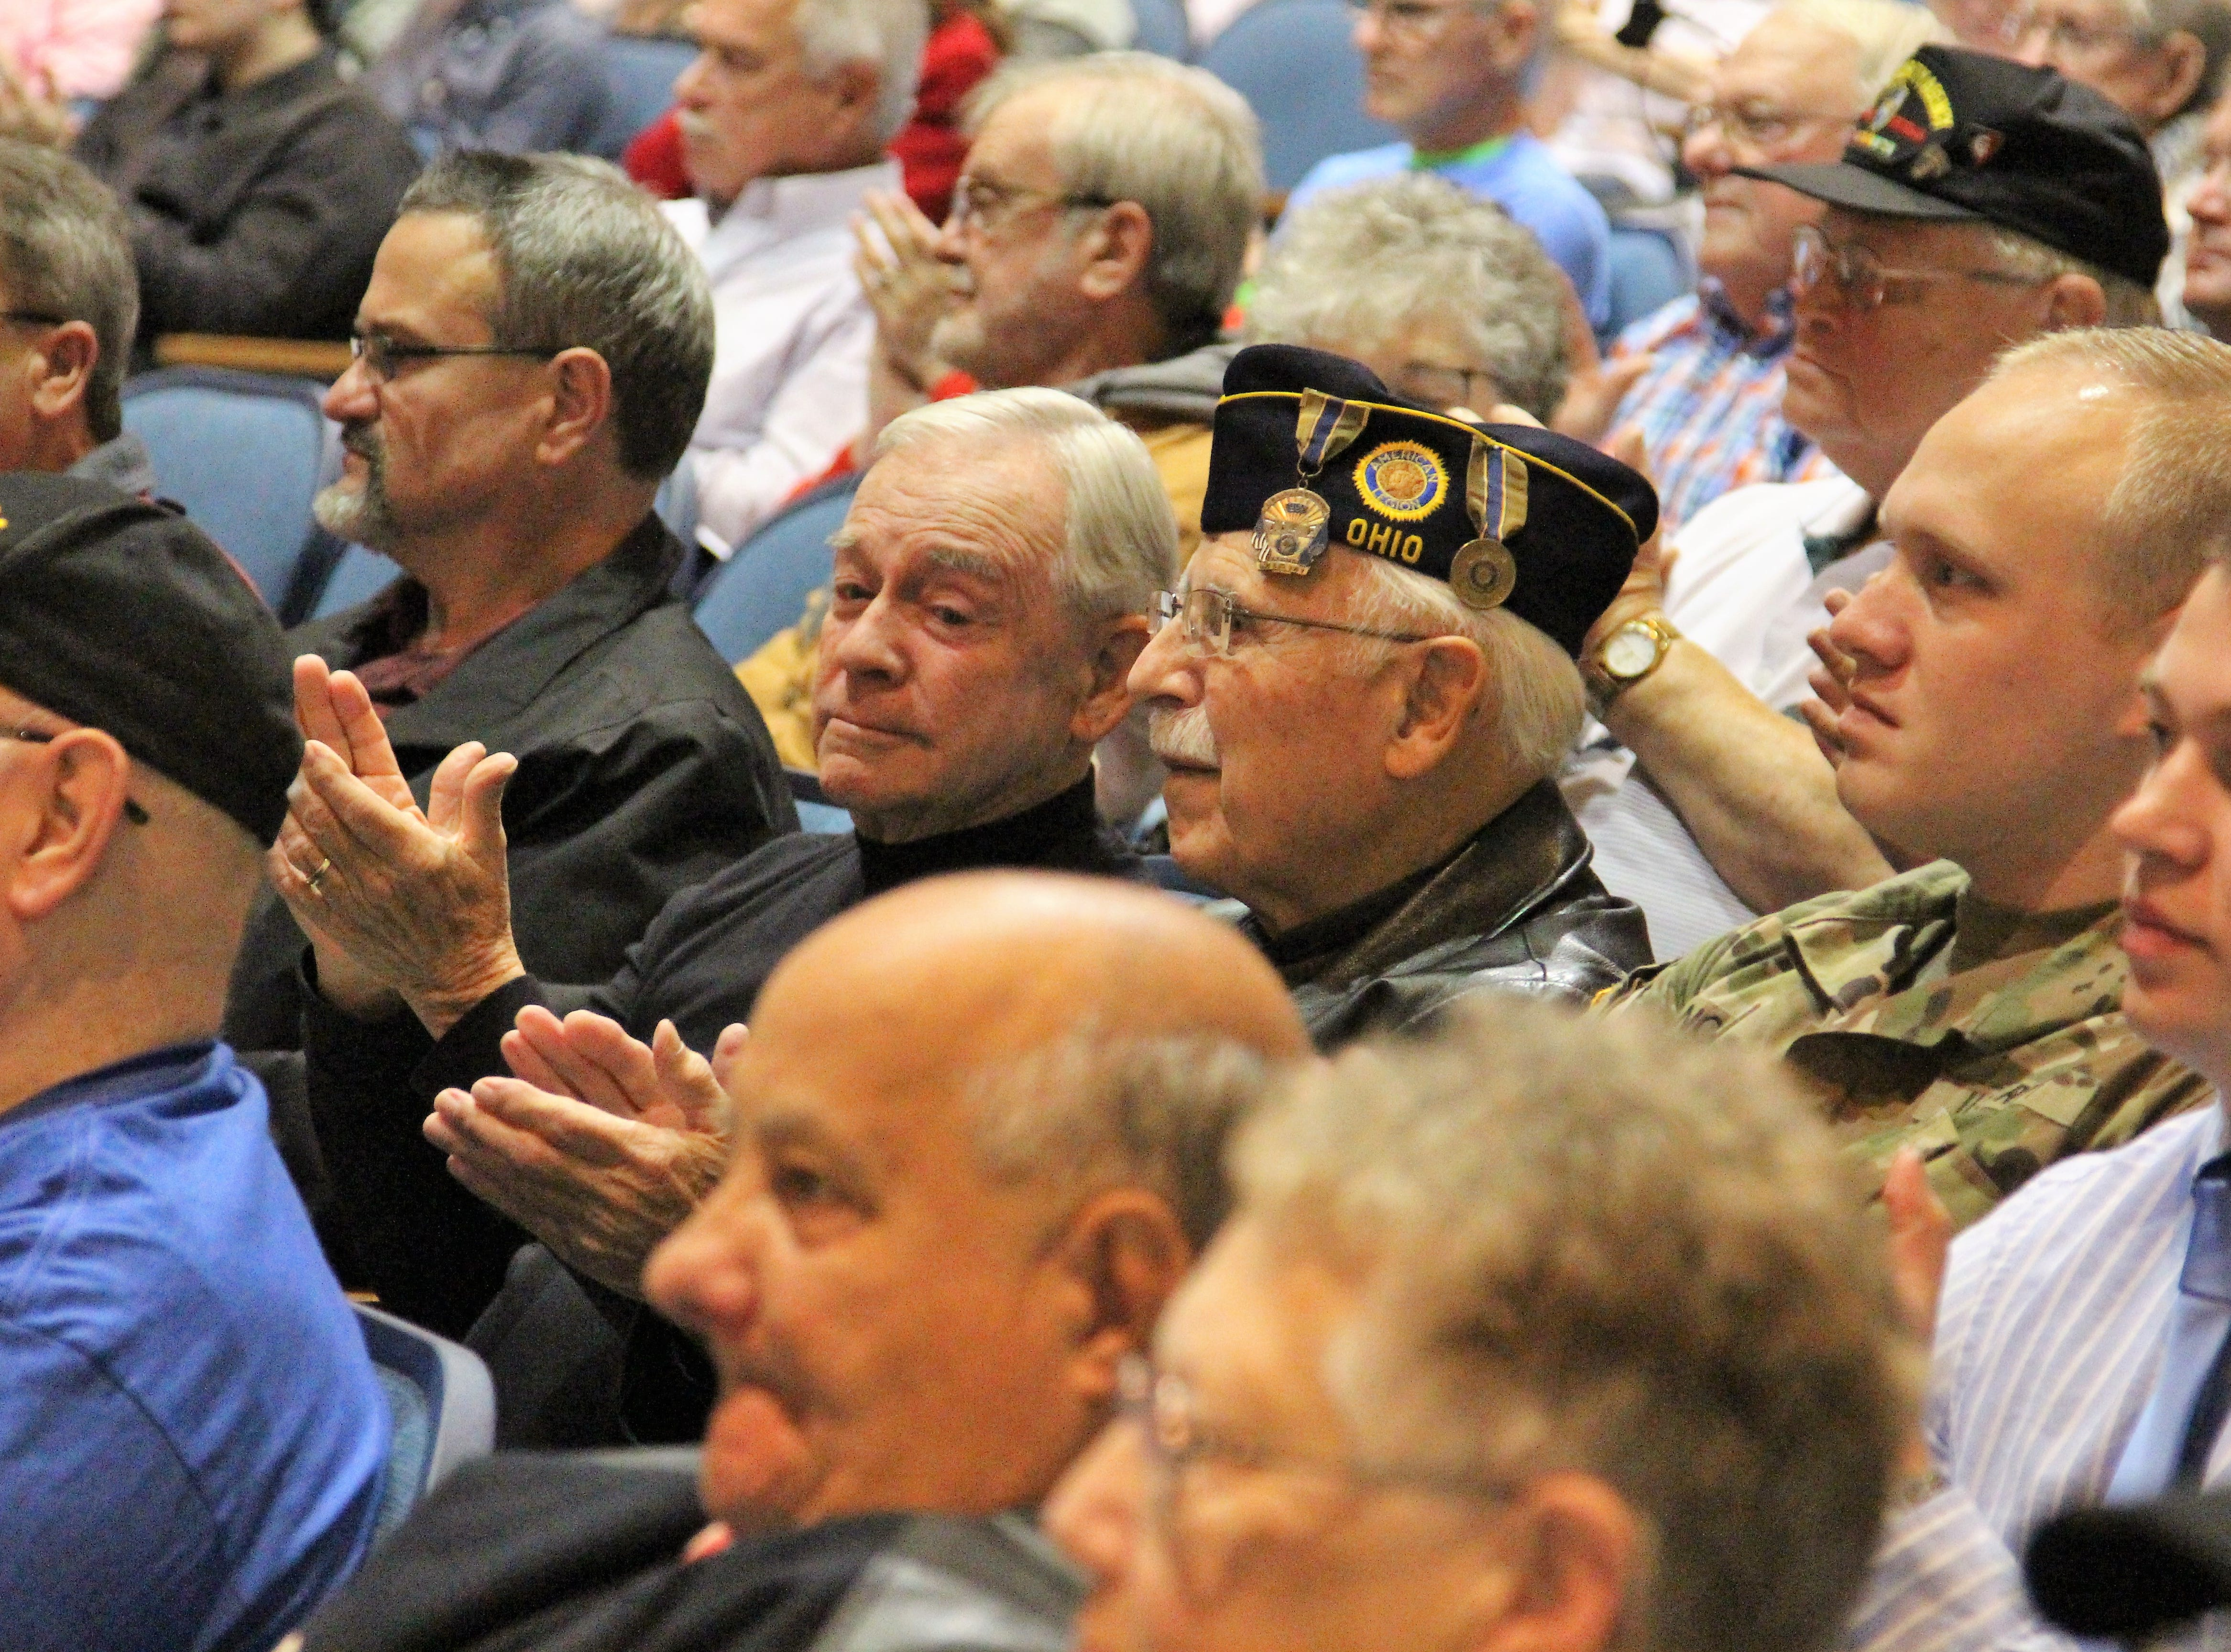 The crowd listened on Tuesday as River Valley students gave speeches and recanted poems. The district wanted to thank local veterans for their service, inviting family members, friends, teachers and former students to partake.